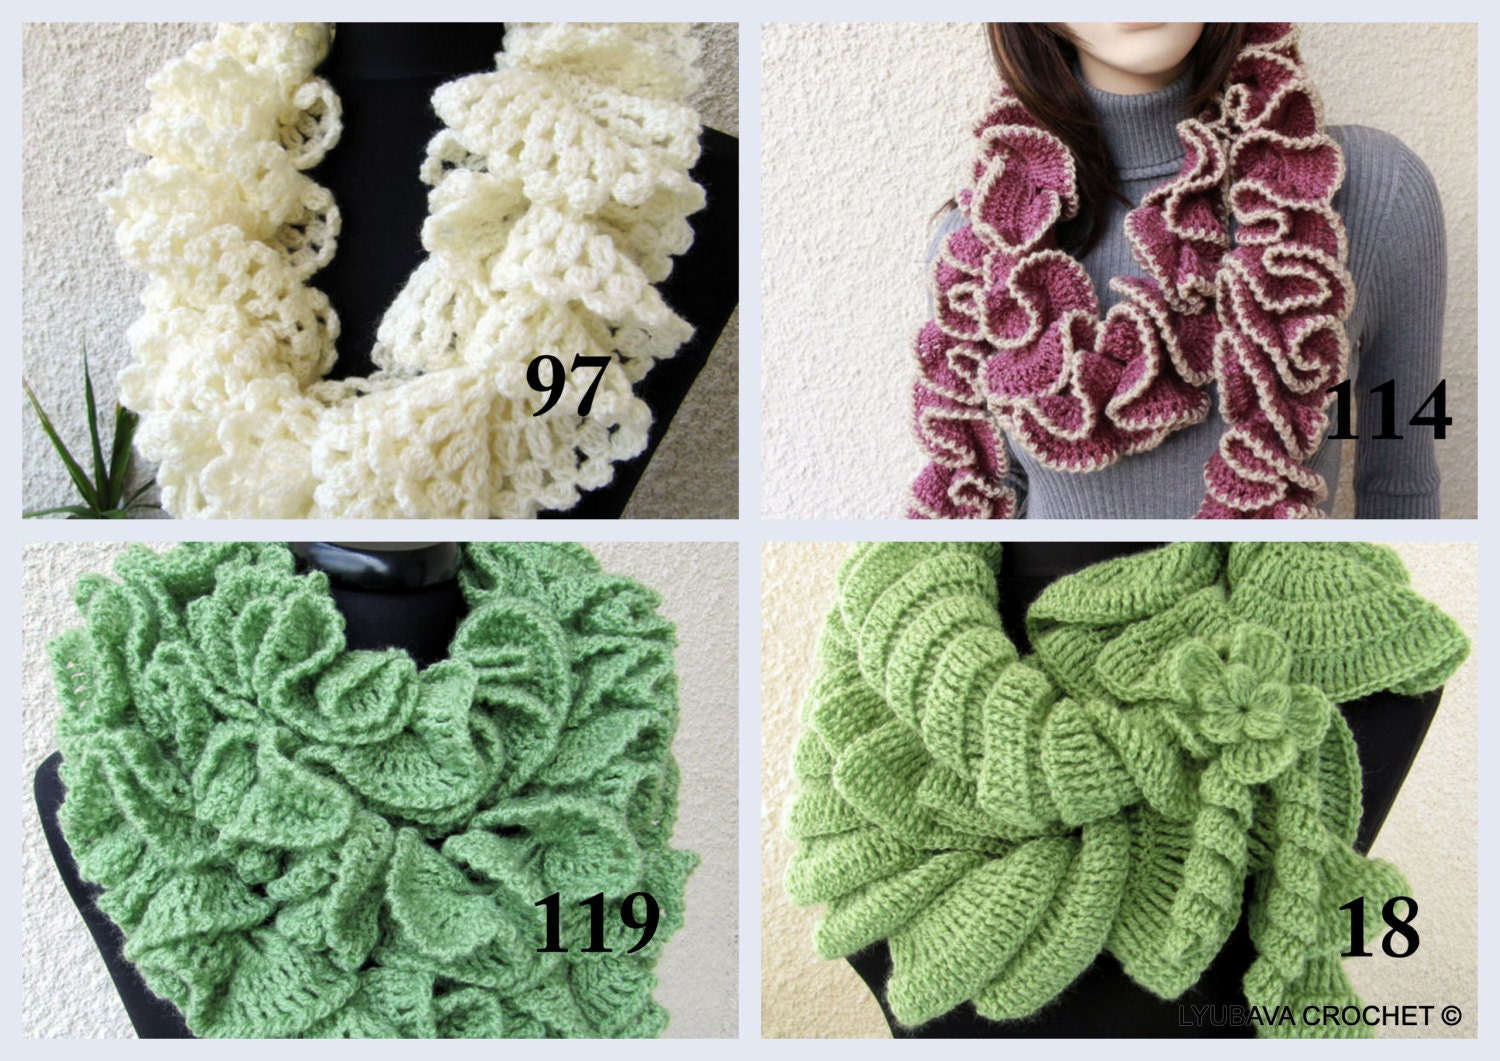 Crochet Ruffle Scarf PATTERNS Unique Crochet by LyubavaCrochet